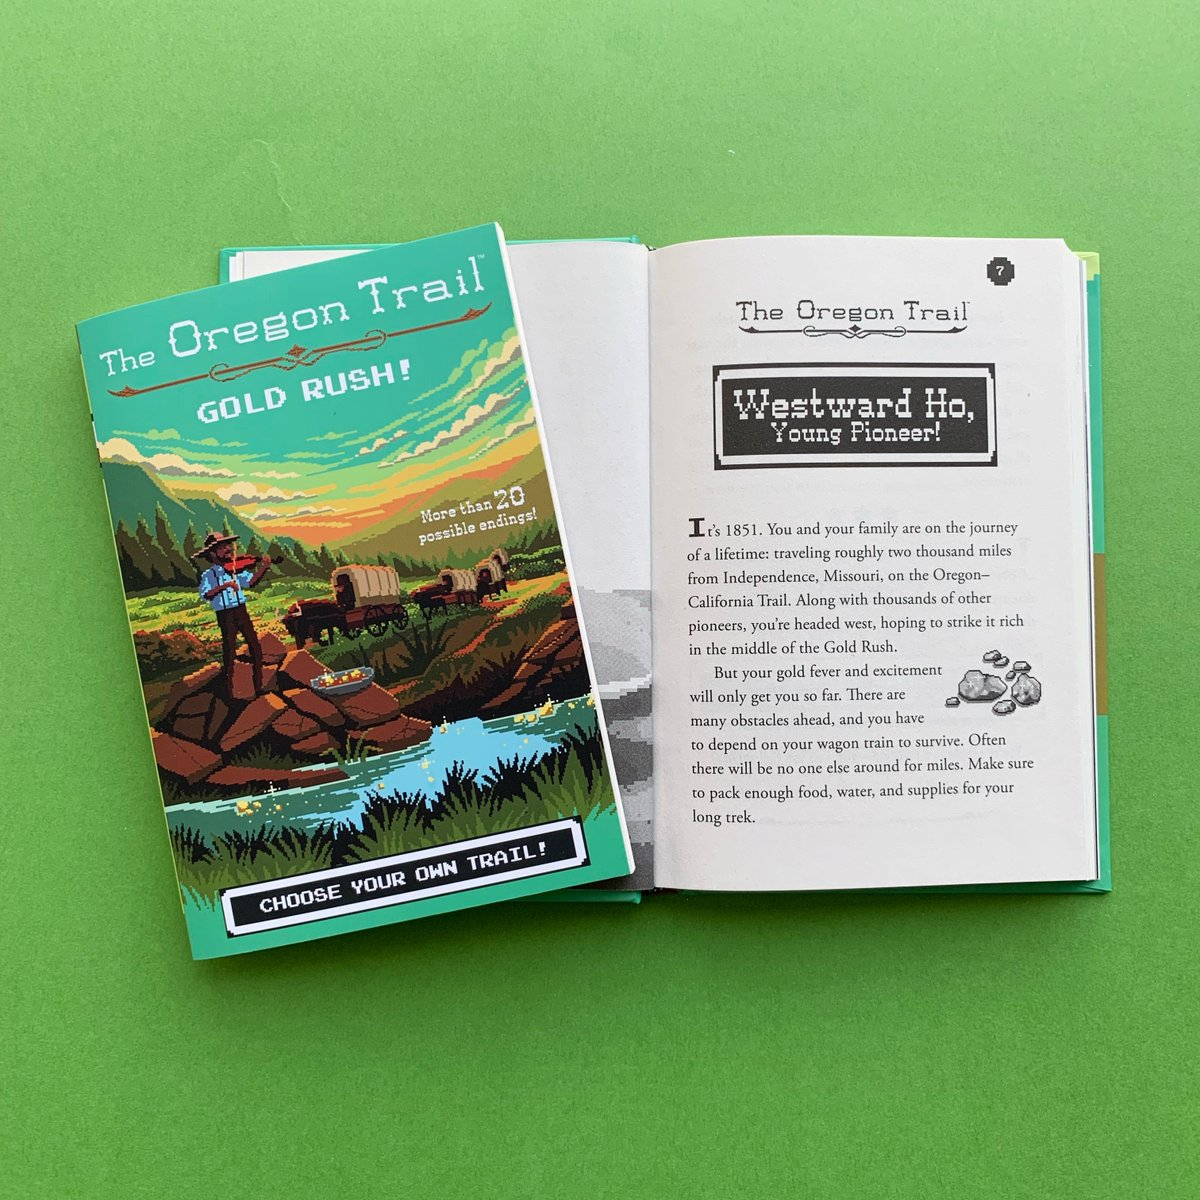 Youre headed West on the Oregon Trail with hopes to strike it rich in this choose-your-own-trail experience. Pick up GOLD RUSH today! #OregonTrail ow.ly/S1nY50w8xmm